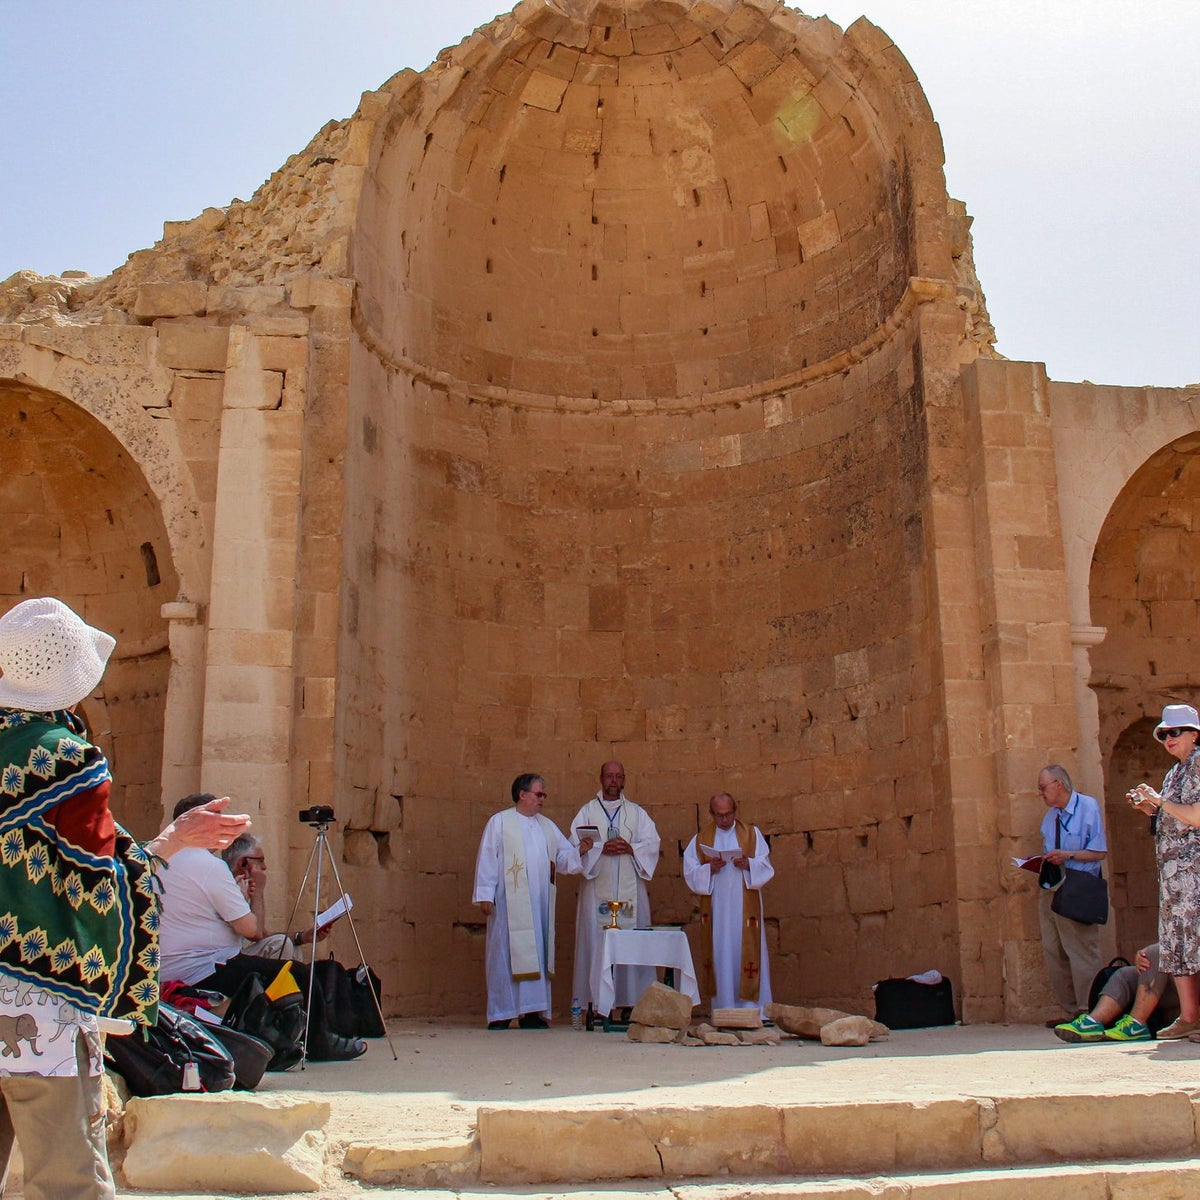 Pilgrims attend a Catholic Mass held among the ruins of a church in Shivta, one of the most prosperous Negev settlements during the Byzantine era, over 1,600 years ago.